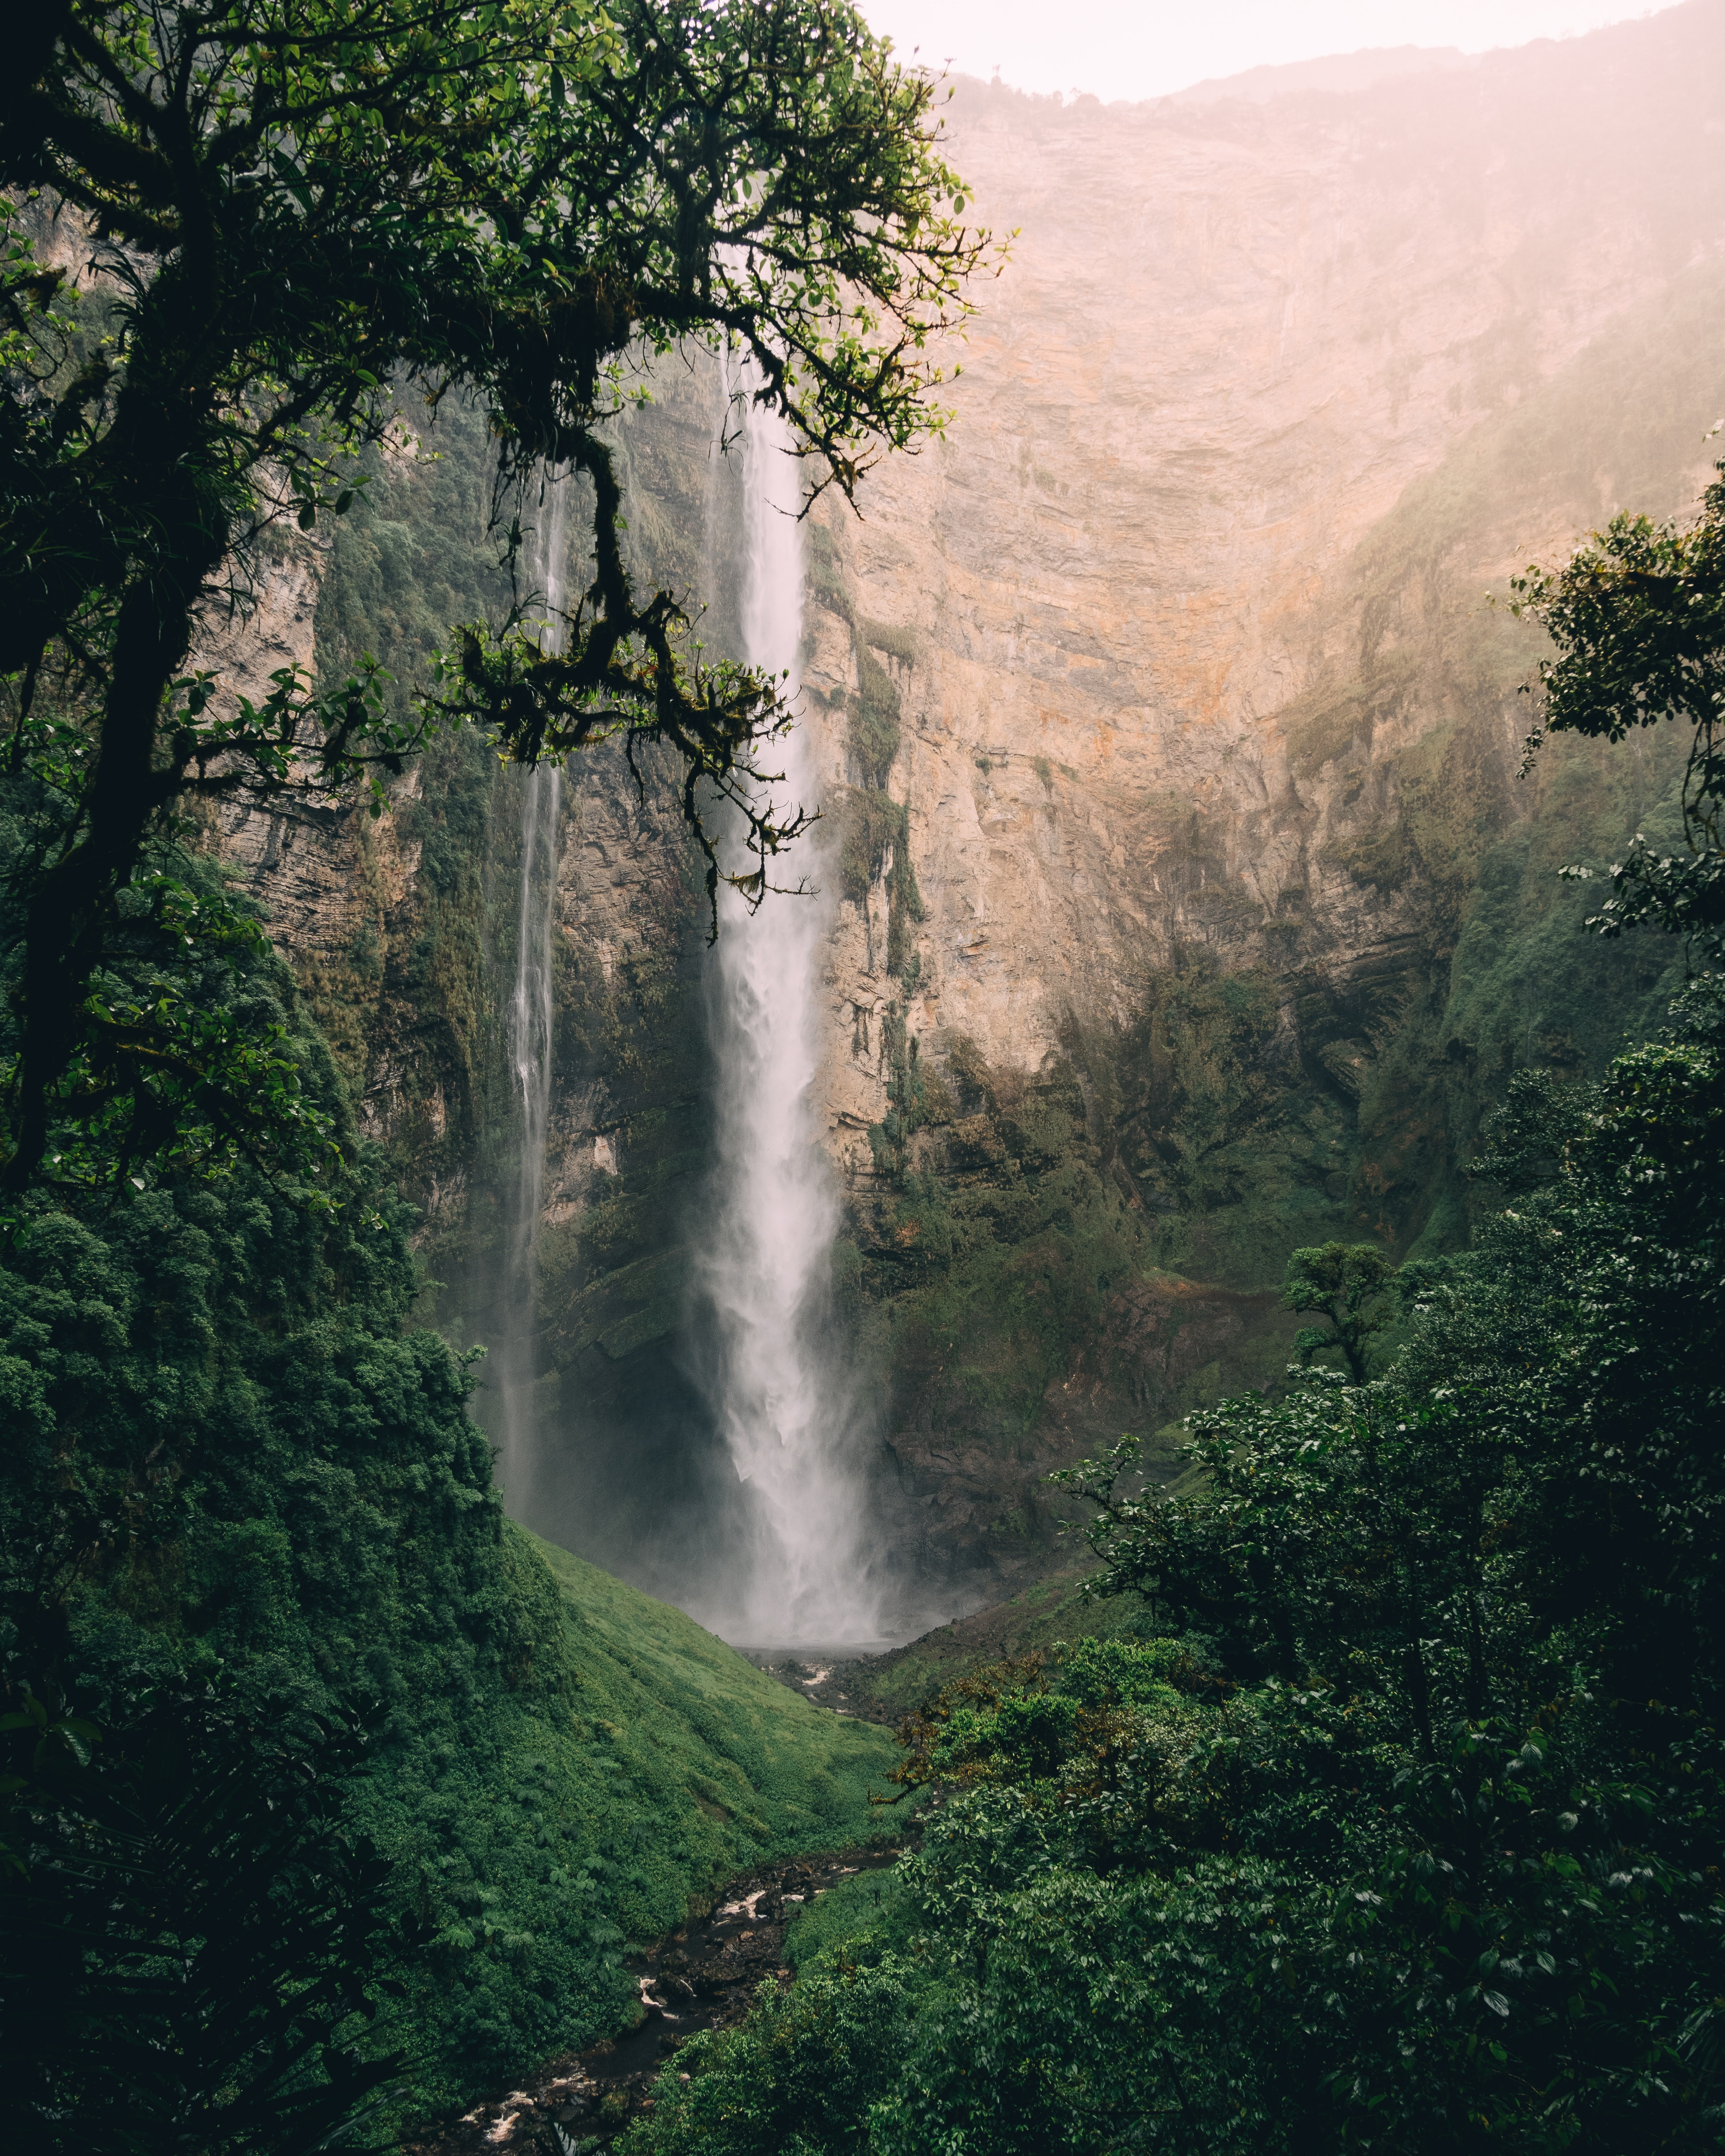 127126 download wallpaper Nature, Water, Waterfall, Fog, Spray, Break, Precipice screensavers and pictures for free